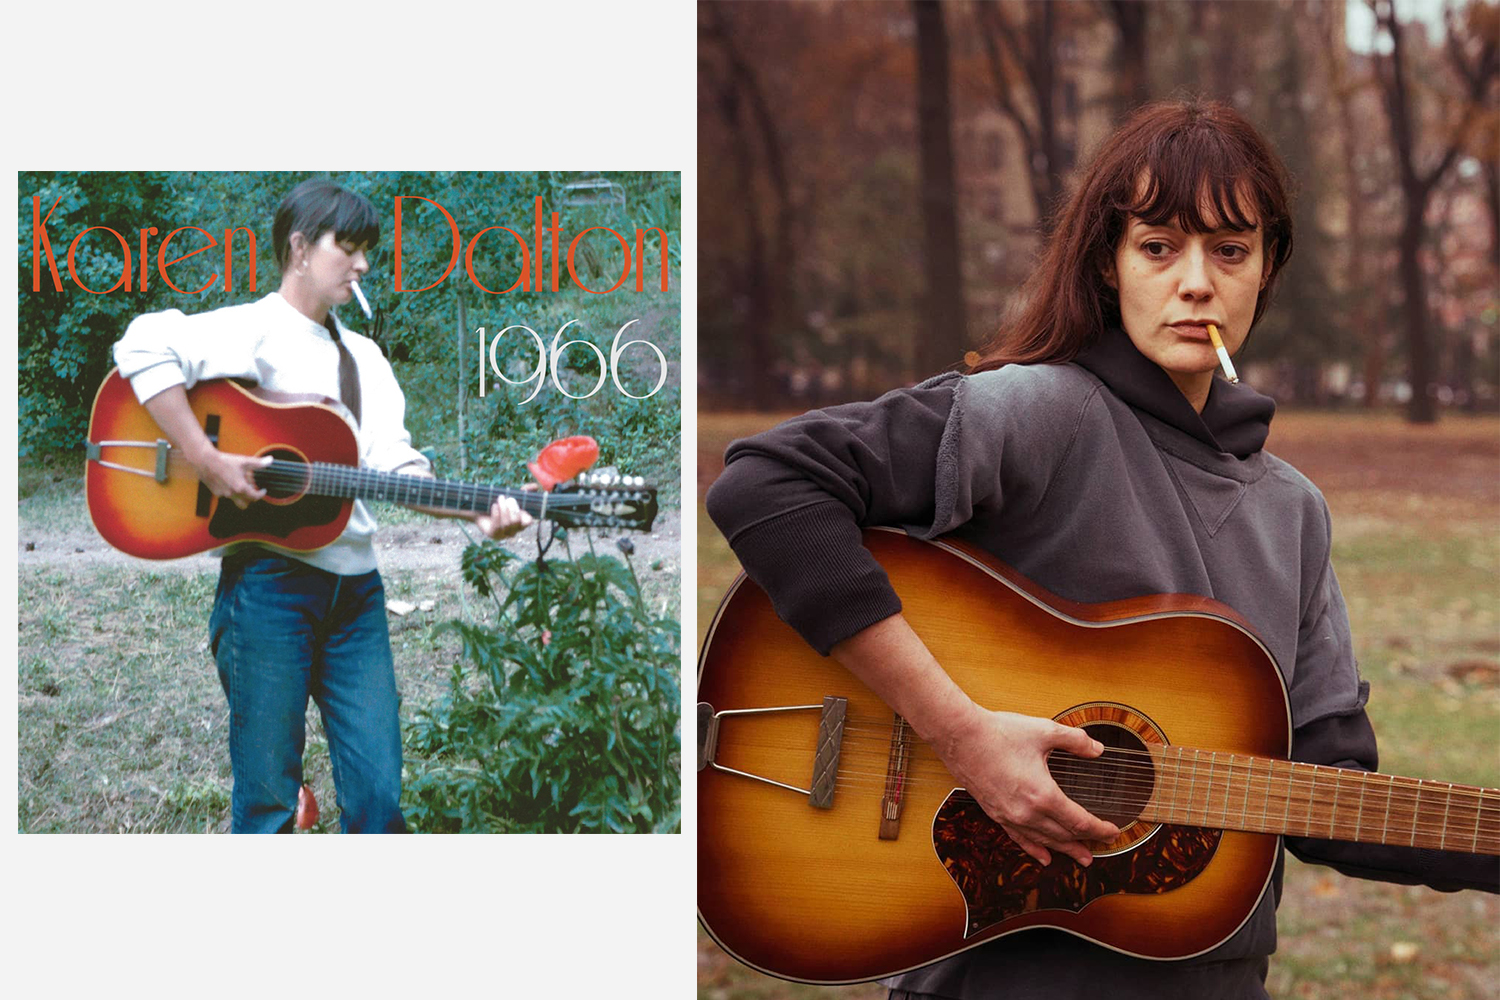 karen dalton 1966 album levi's folk city collection